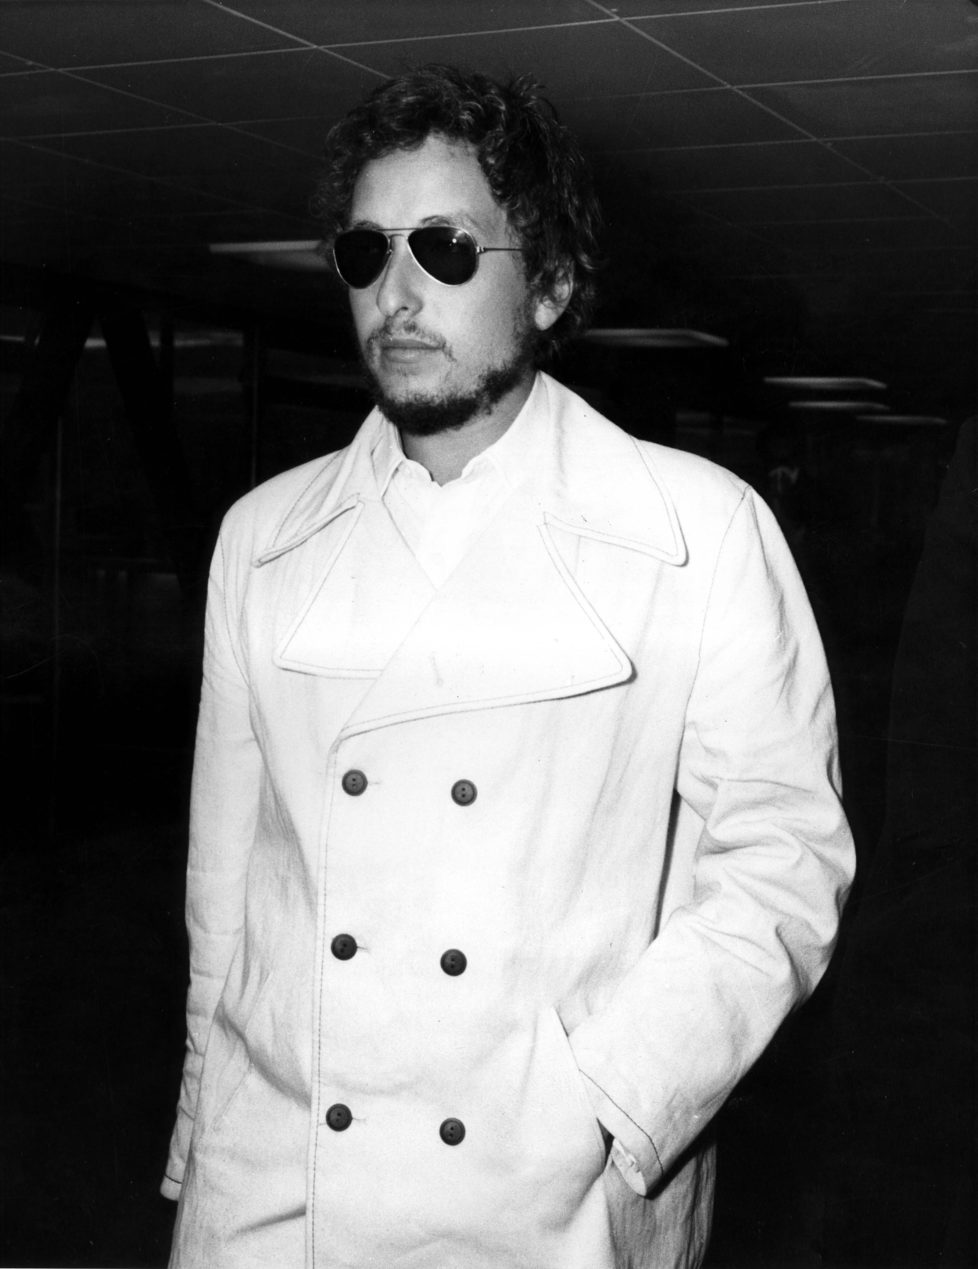 UNITED KINGDOM - AUGUST 26: Photo of Bob DYLAN; Event: Heathrow Airport 1969., Artist: Bob Dylan (Photo by Cummings Archives/Redferns)